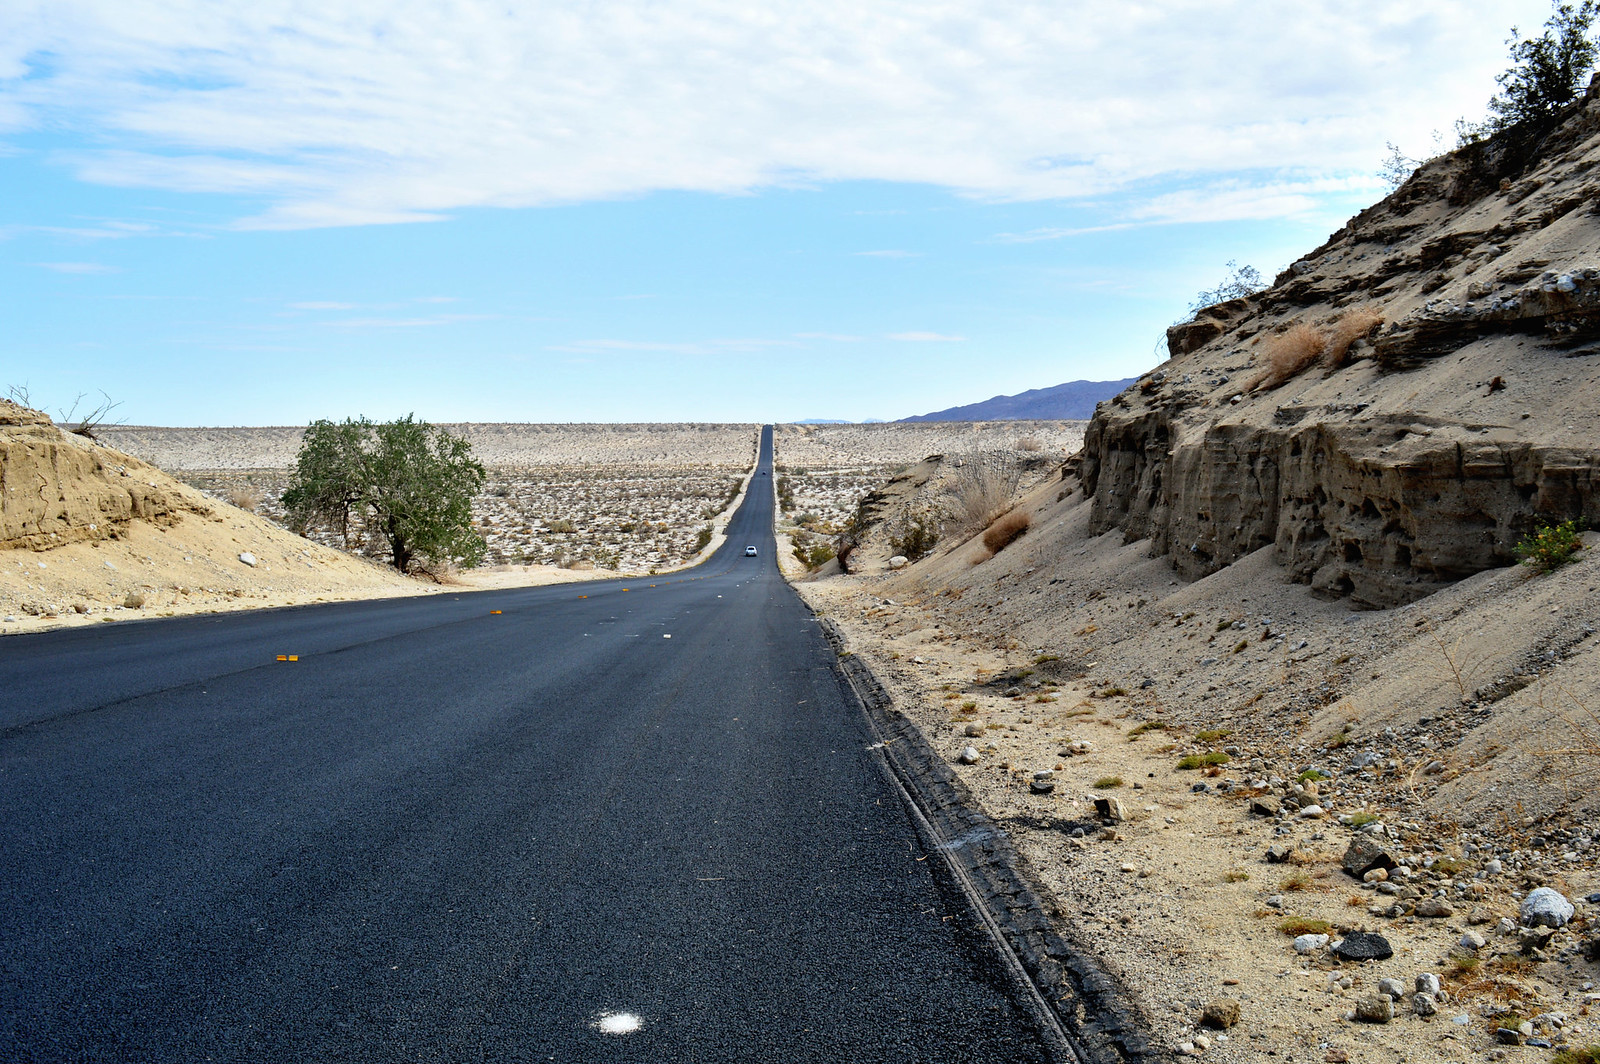 Road in the Anza-Borrego Desert State Park, California.